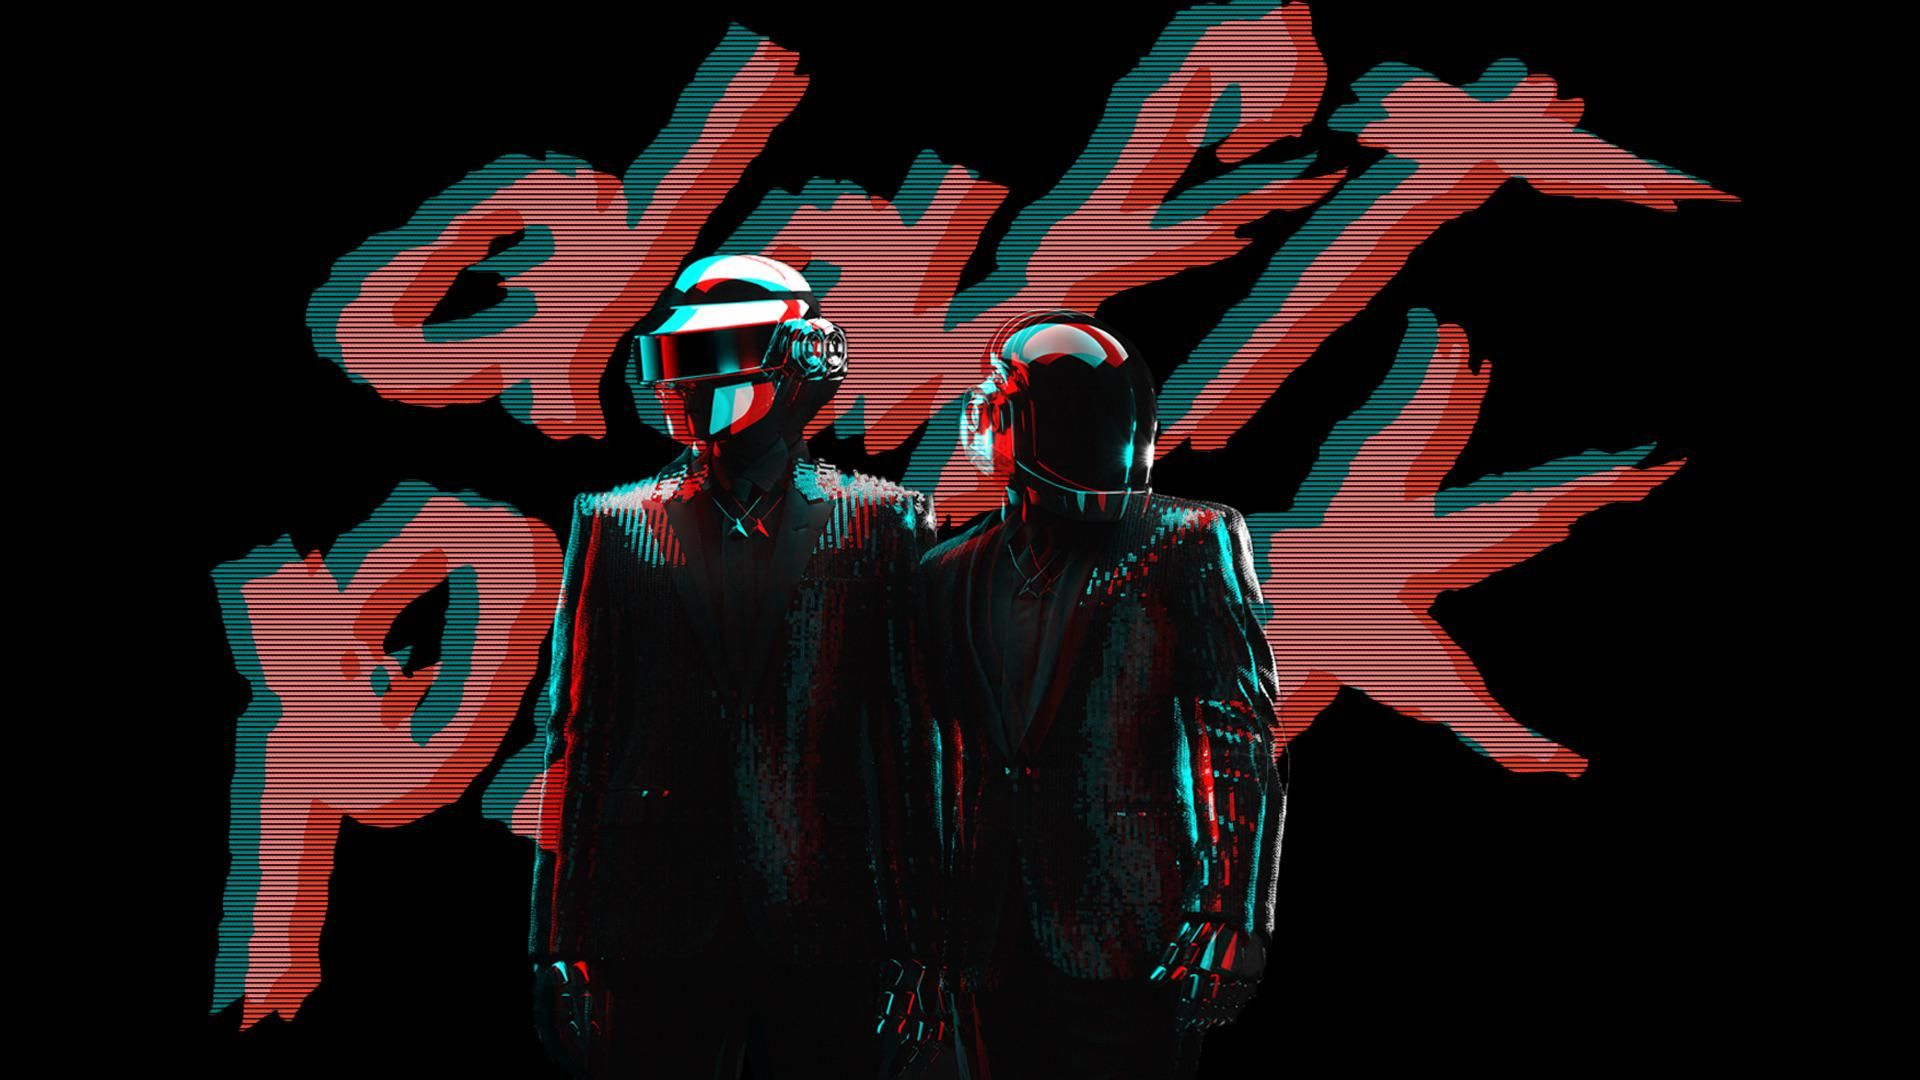 Cool Glitchy Daft Punk Wallpaper I Whipped Up Today In Photoshop Daft Punk Lego Wallpaper Punk